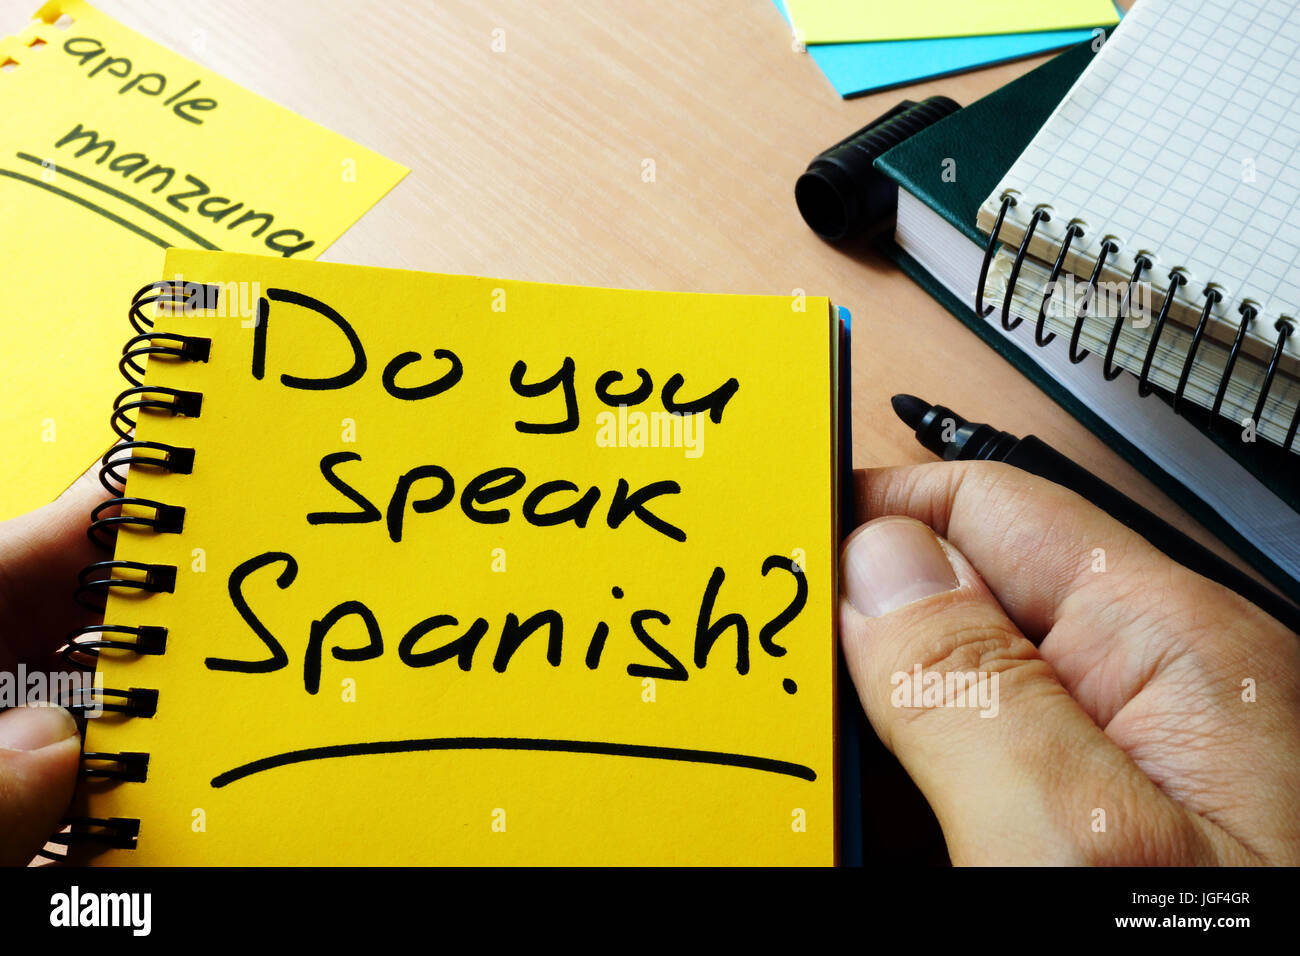 Do you speak Spanish? written in a note. - Stock Image